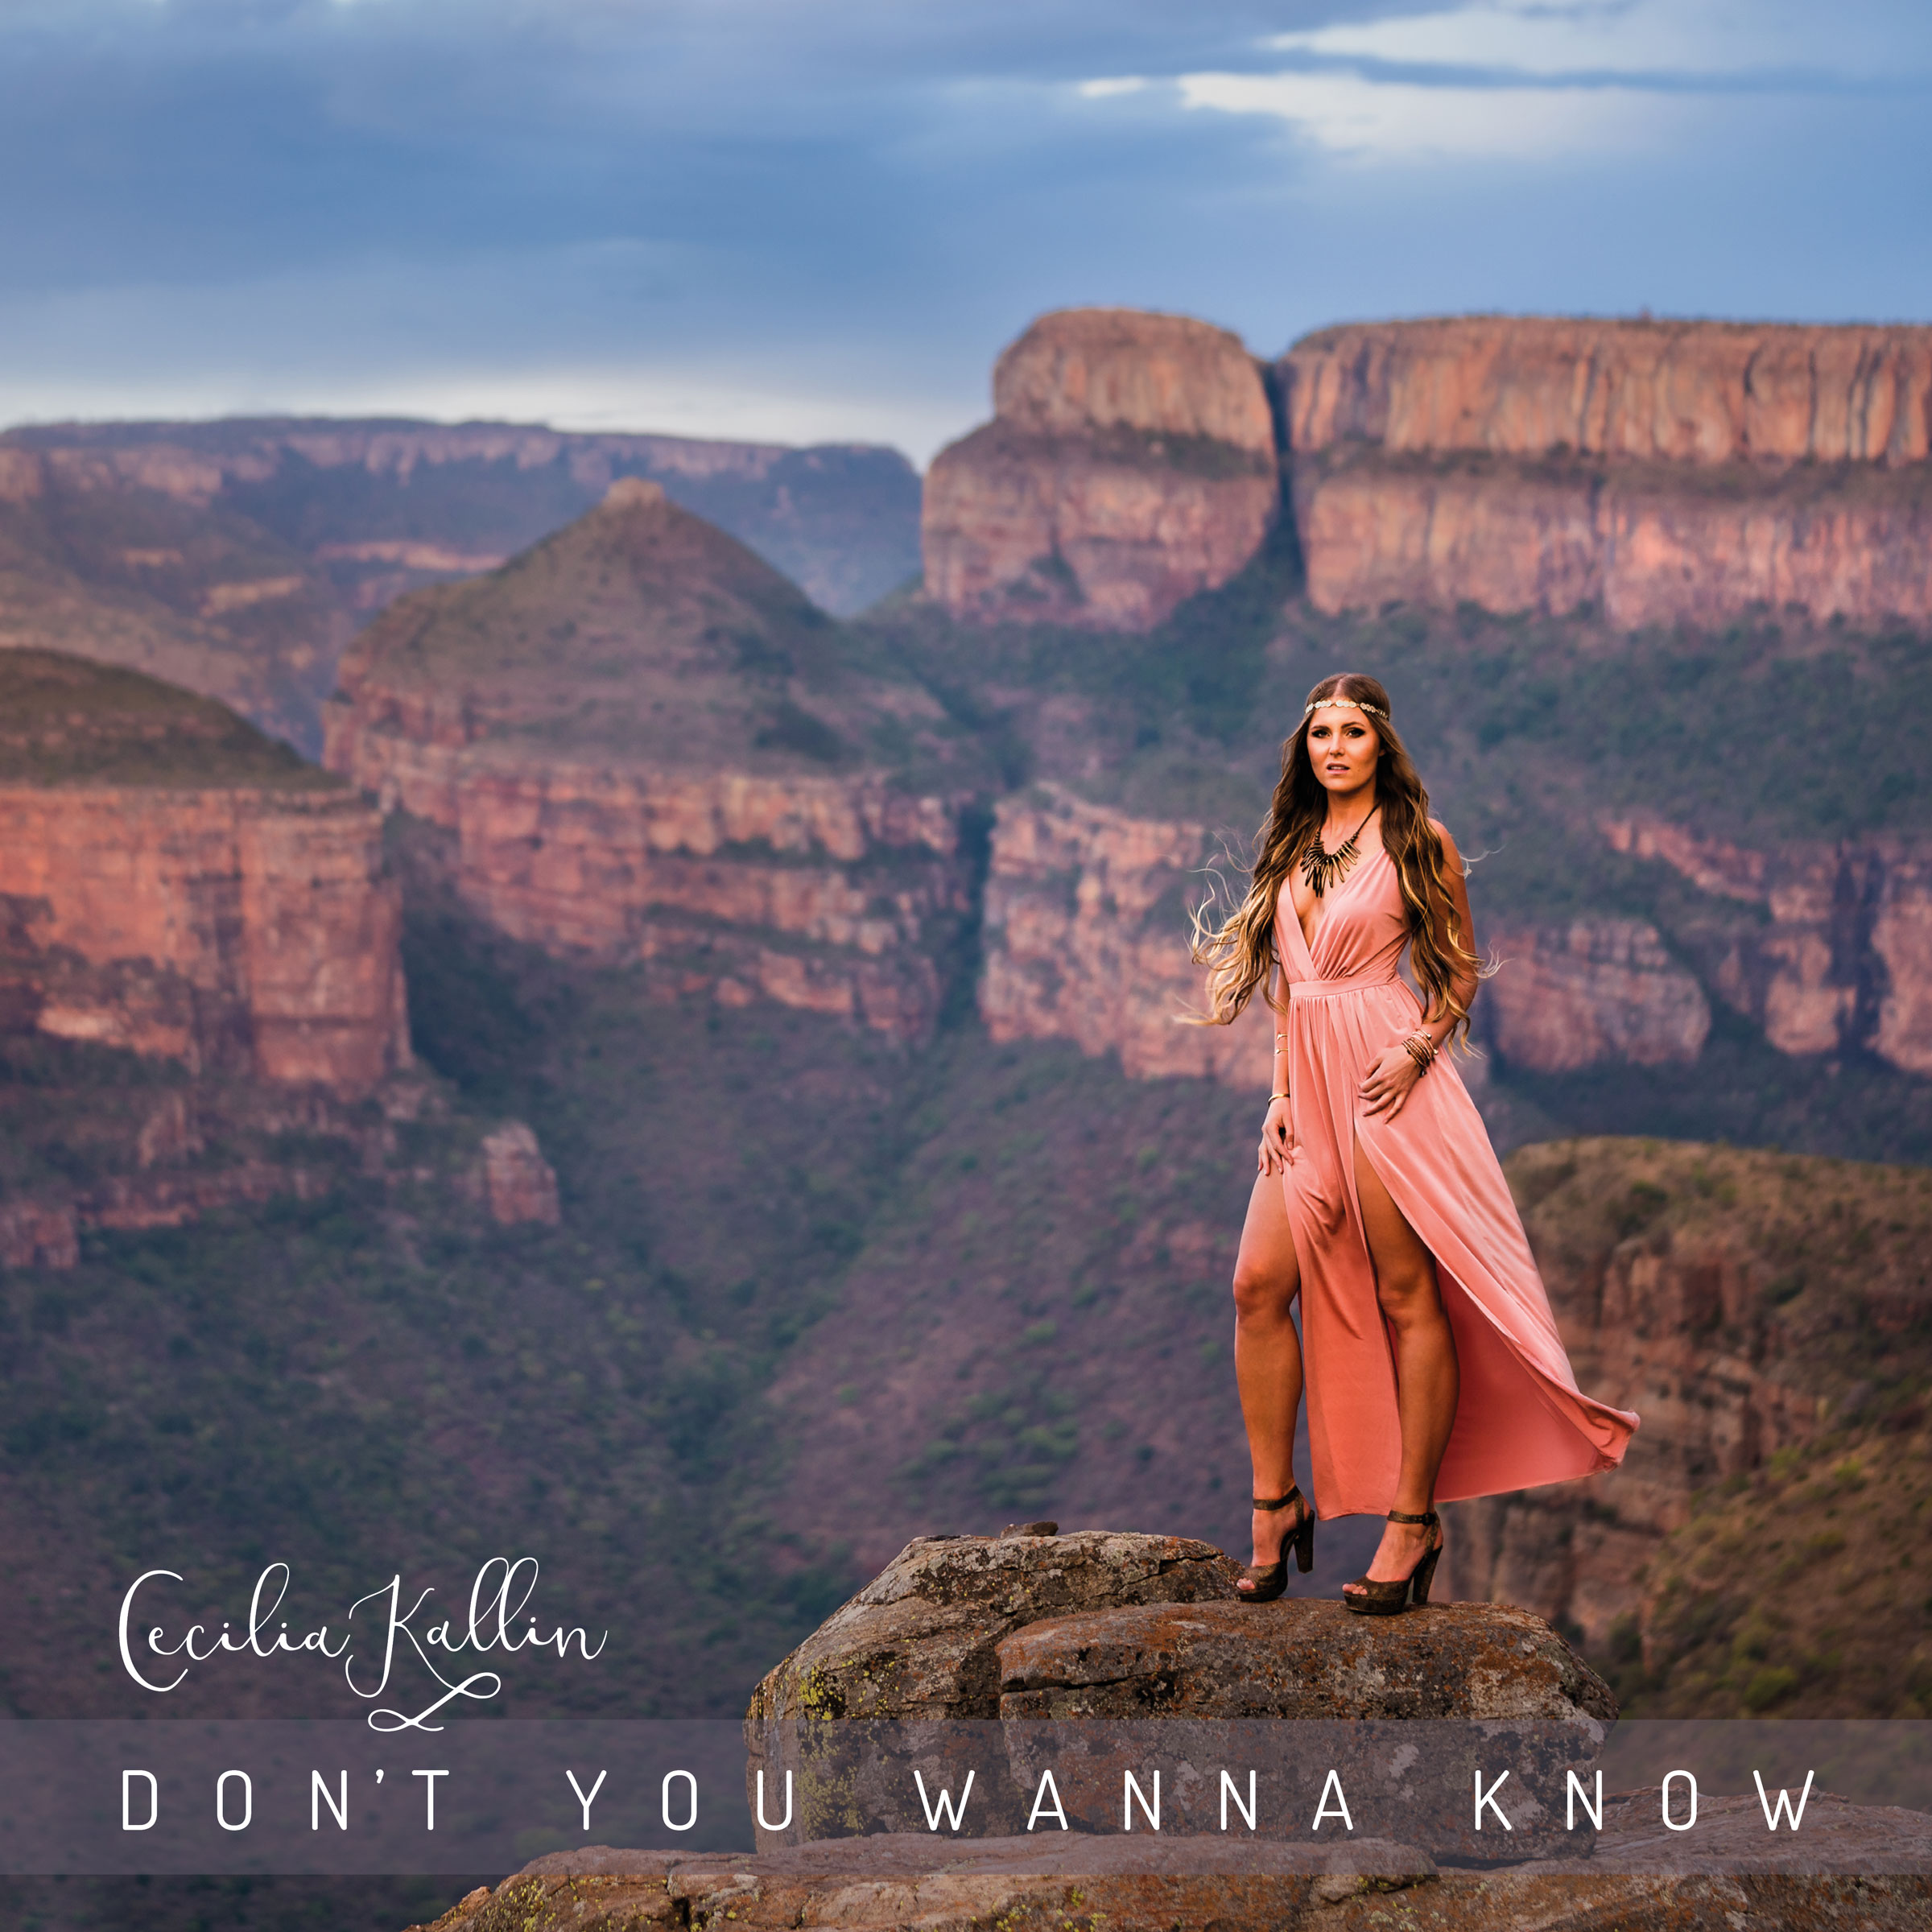 cecilia-kallin-single-cover-dont-you-wanna-know-web